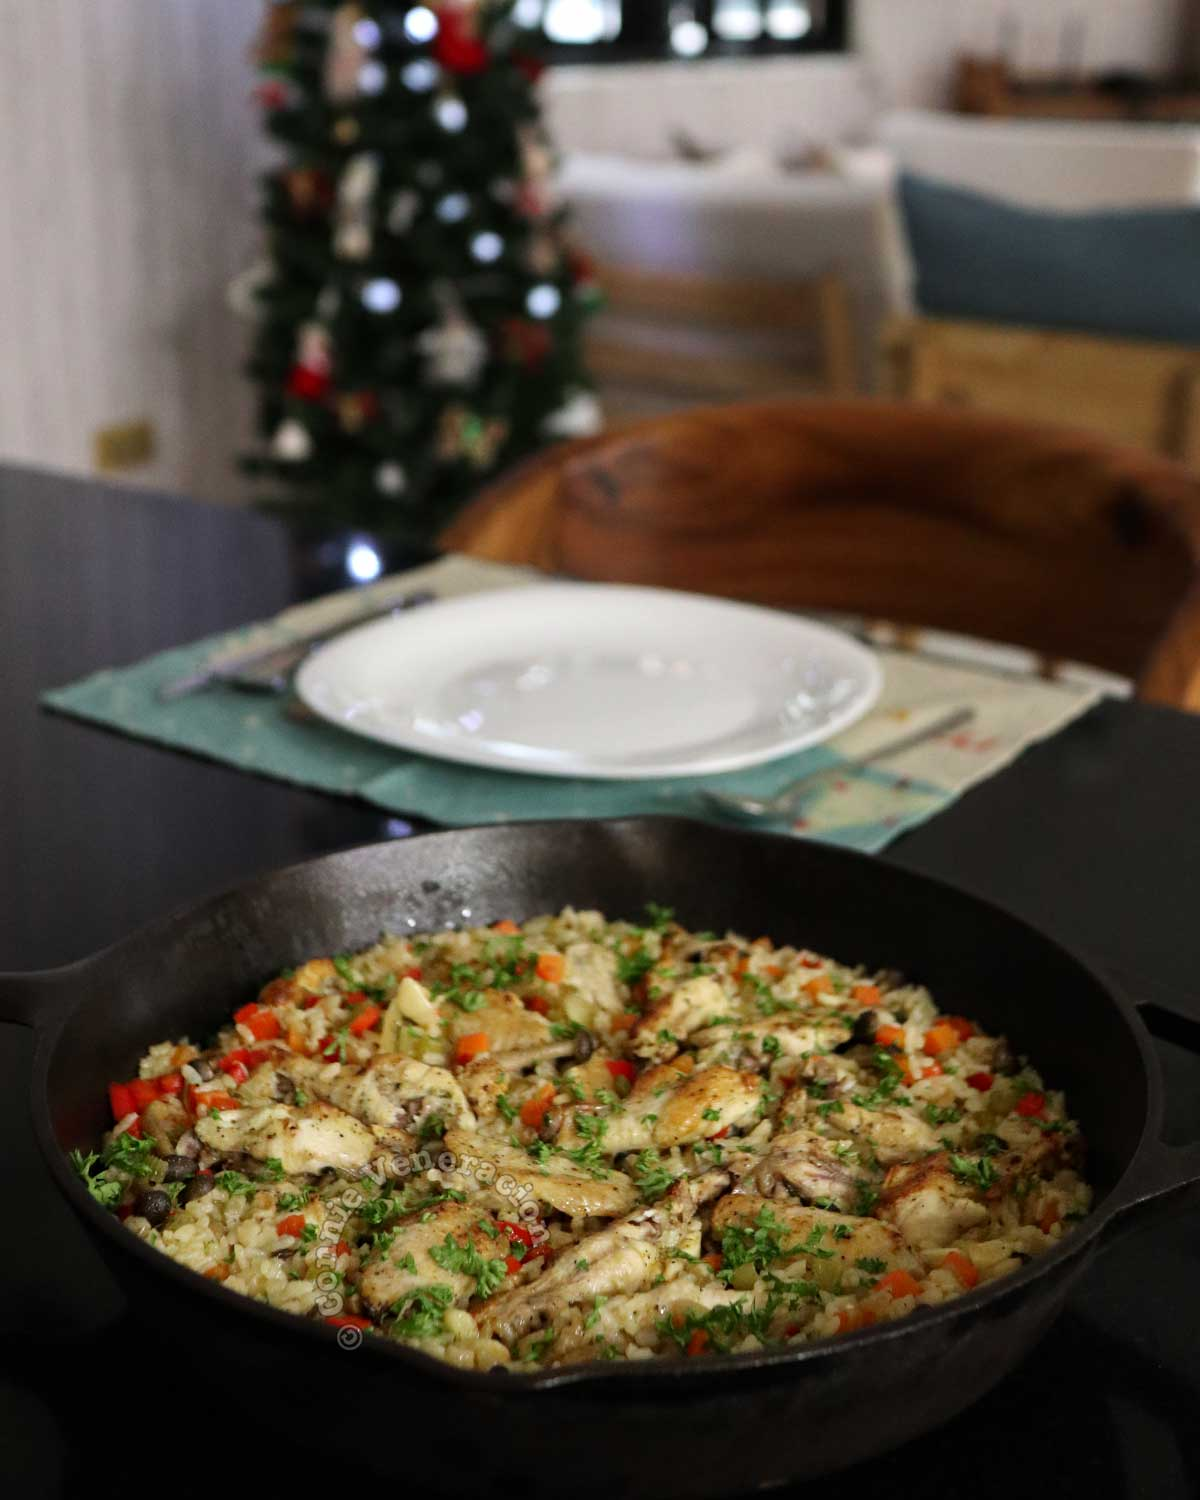 Chicken and mushrooms rice casserole on dining table with Christmas tree in background